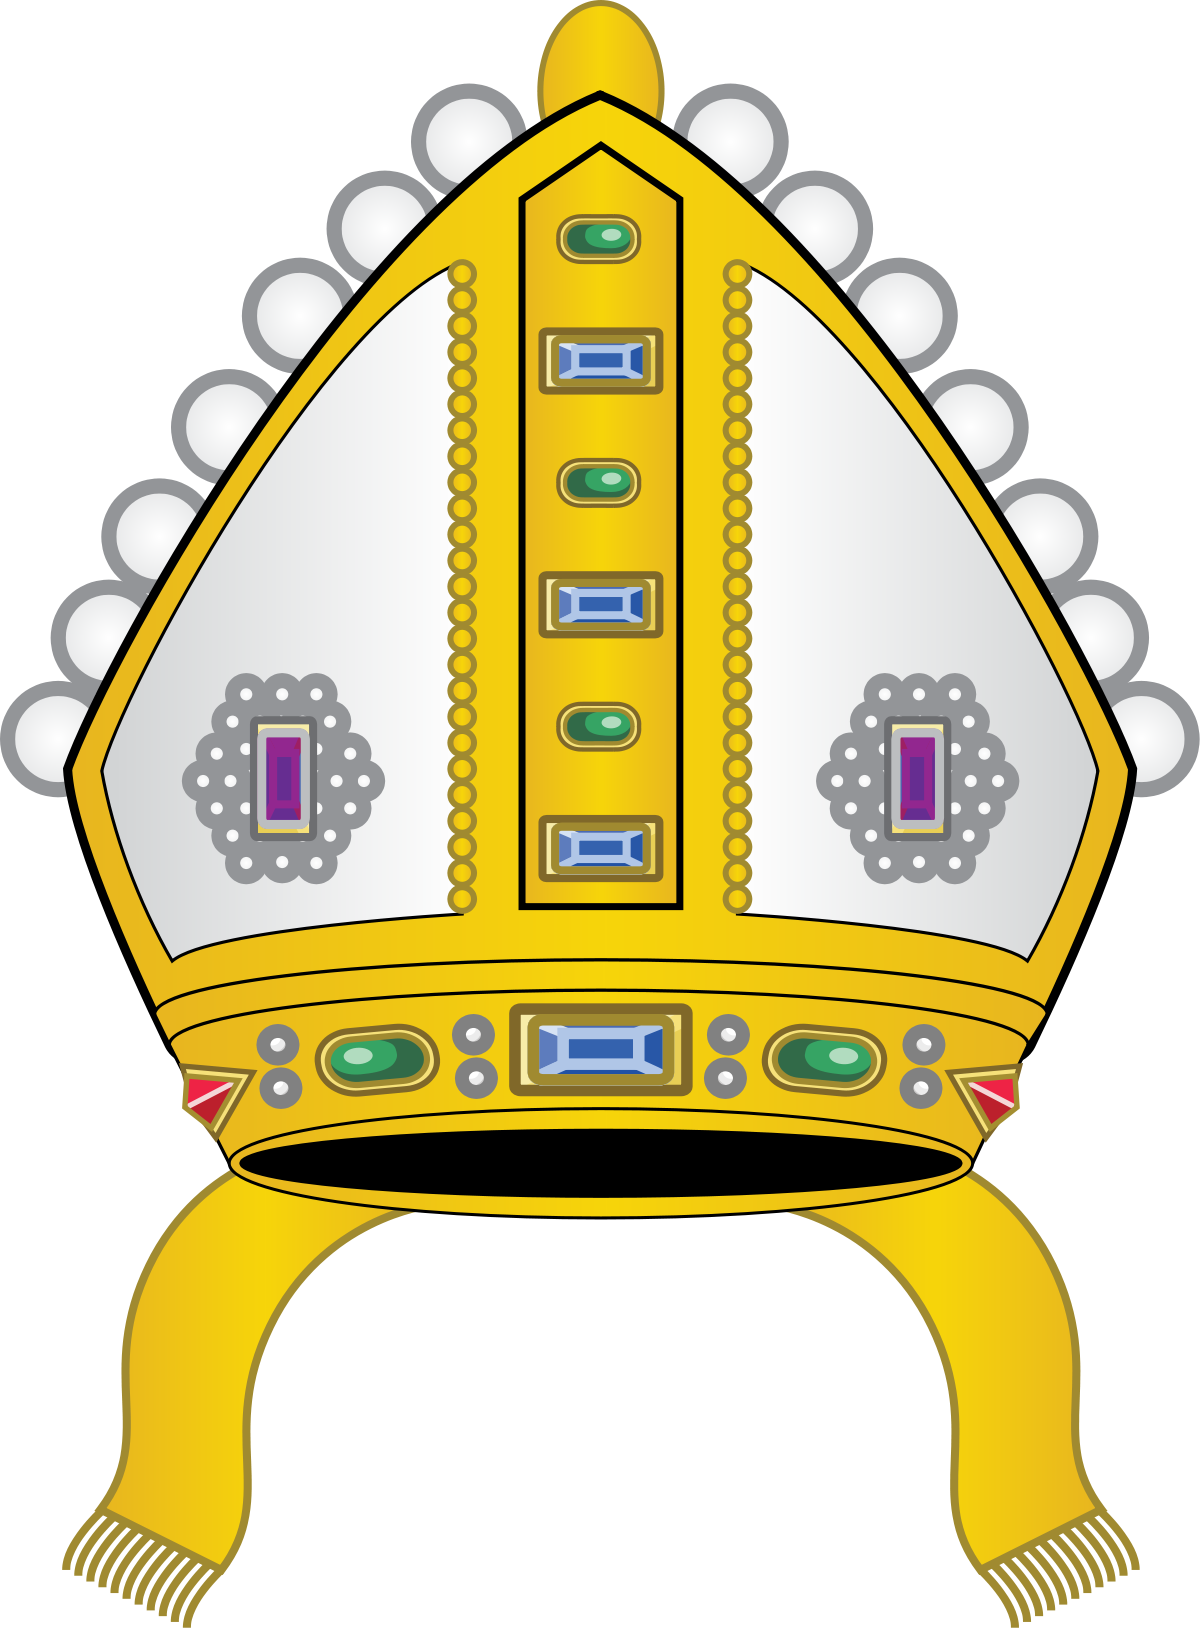 Pass on the crown clipart clip freeuse library Mitre - Wikipedia clip freeuse library